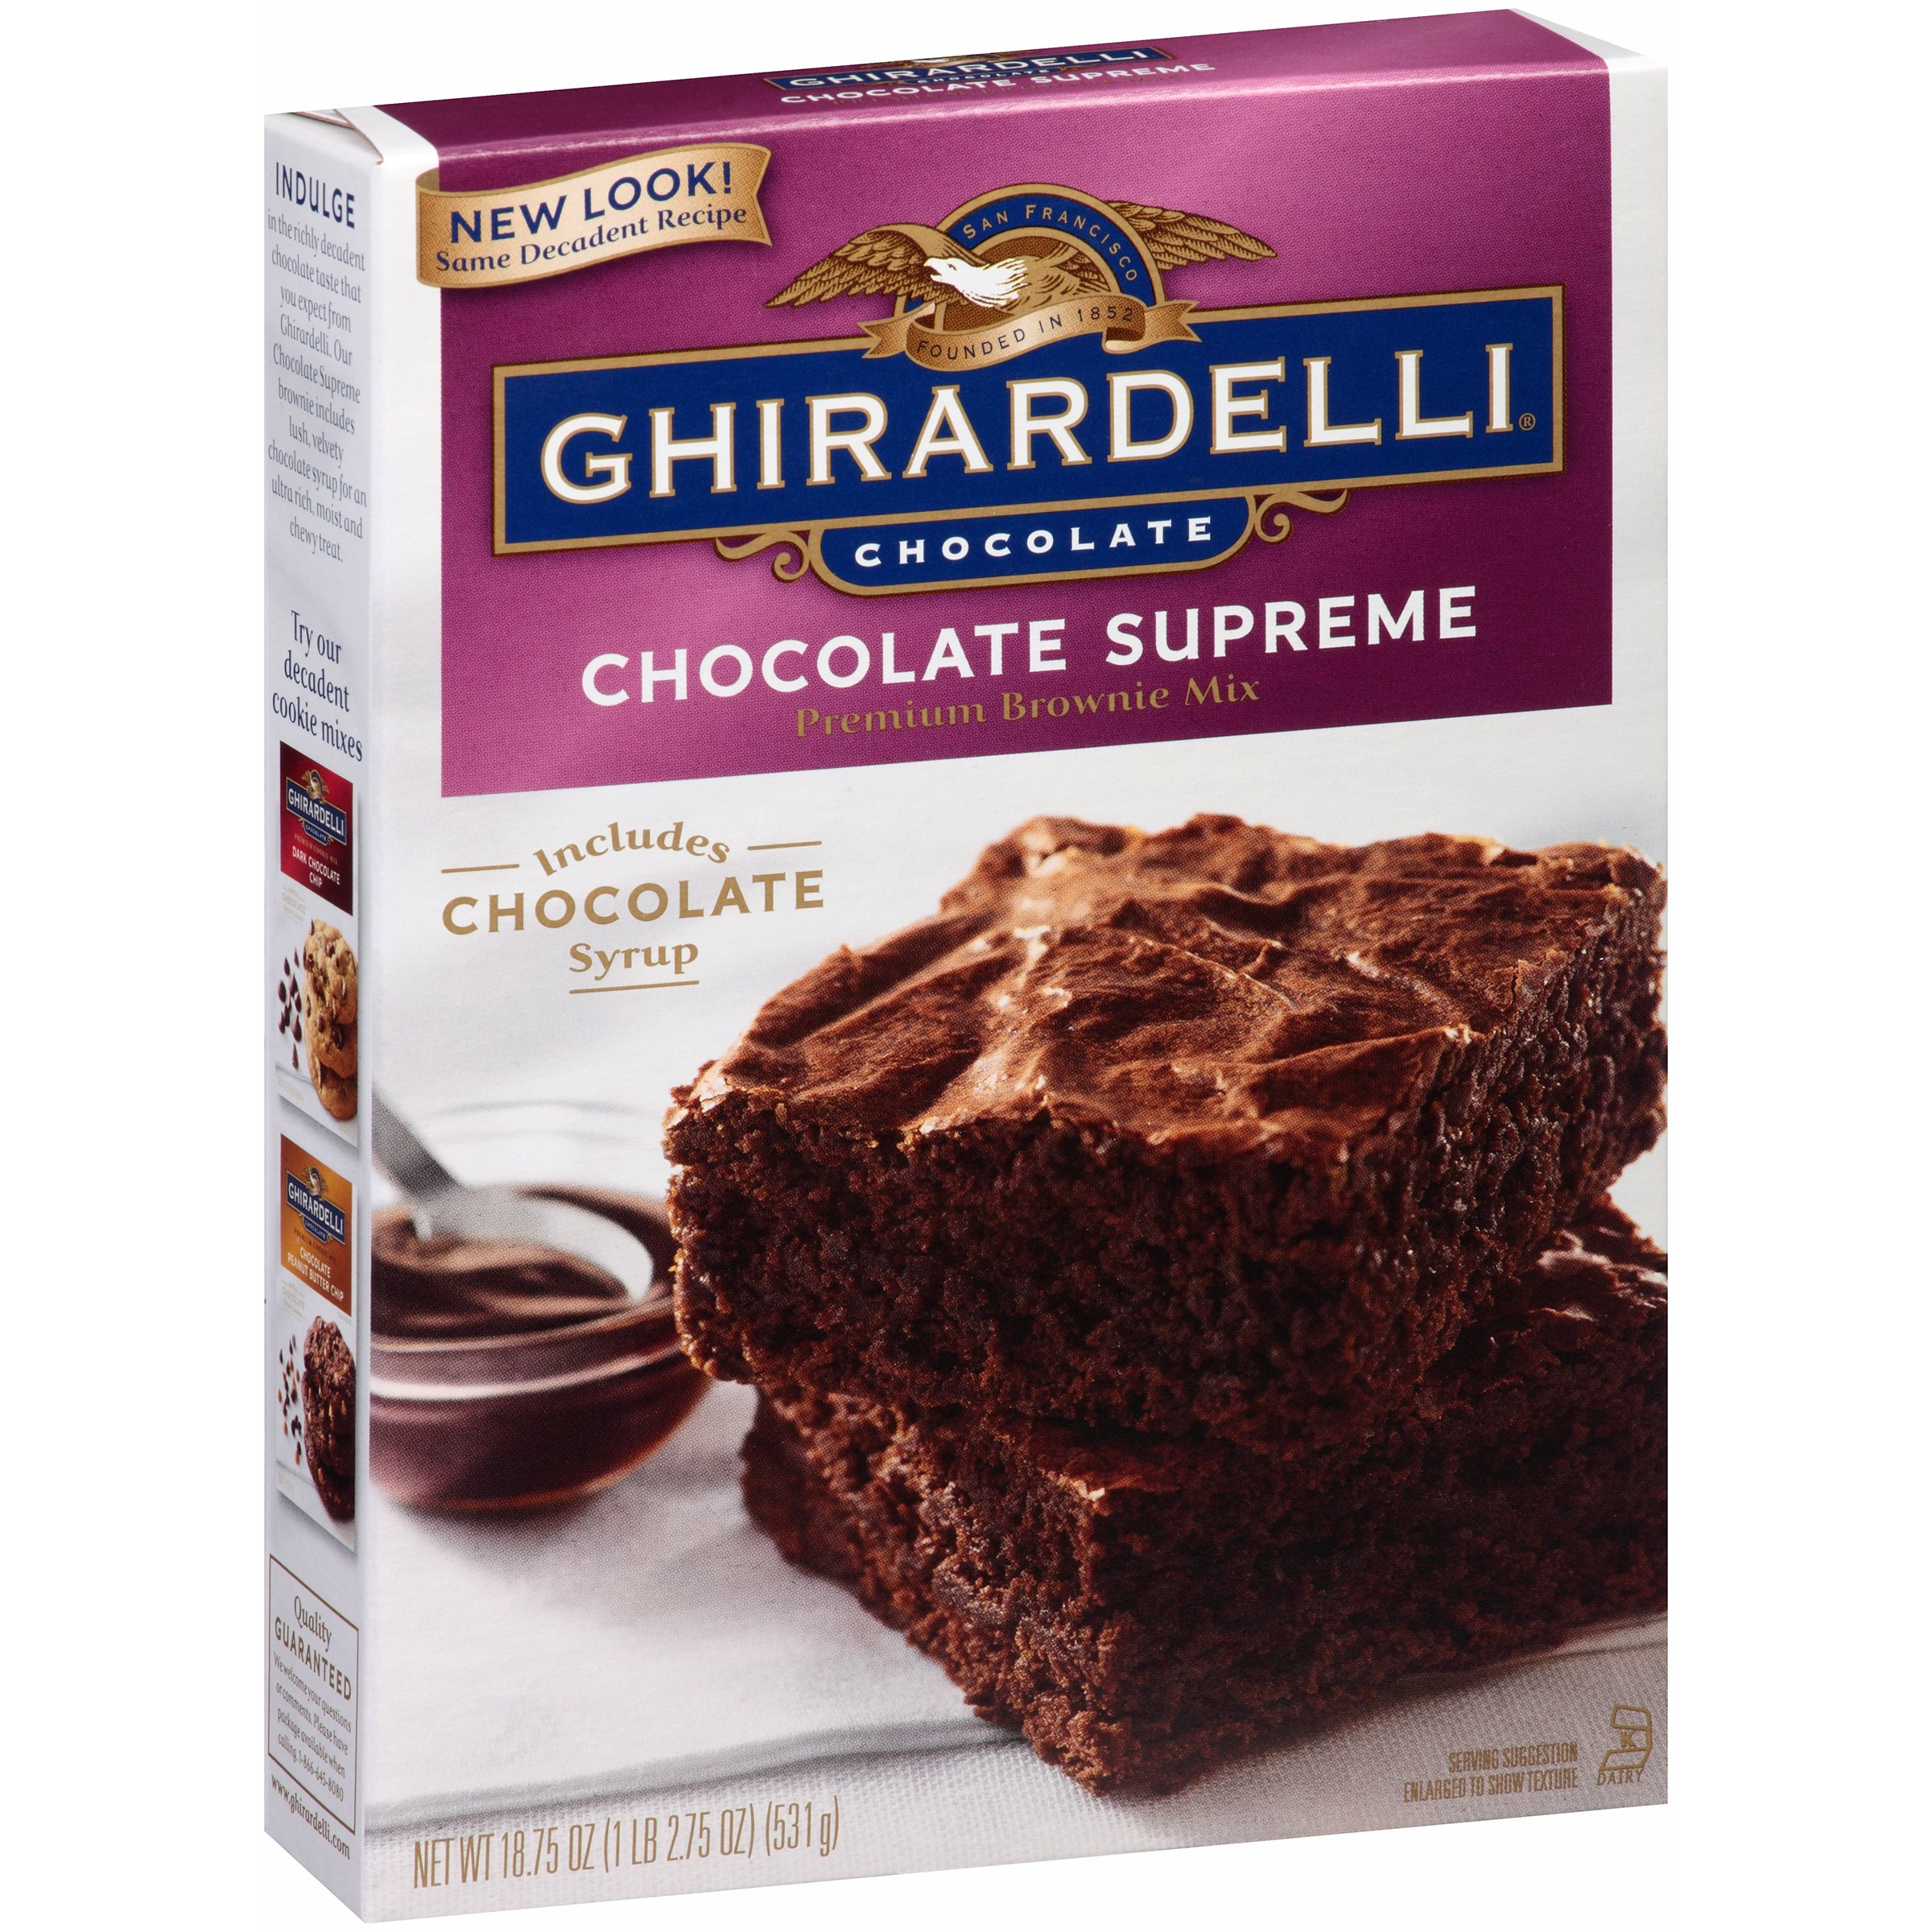 (4 Pack) Ghirardelli Chocolate Supreme Premium Brownie Mix, 18.75 oz